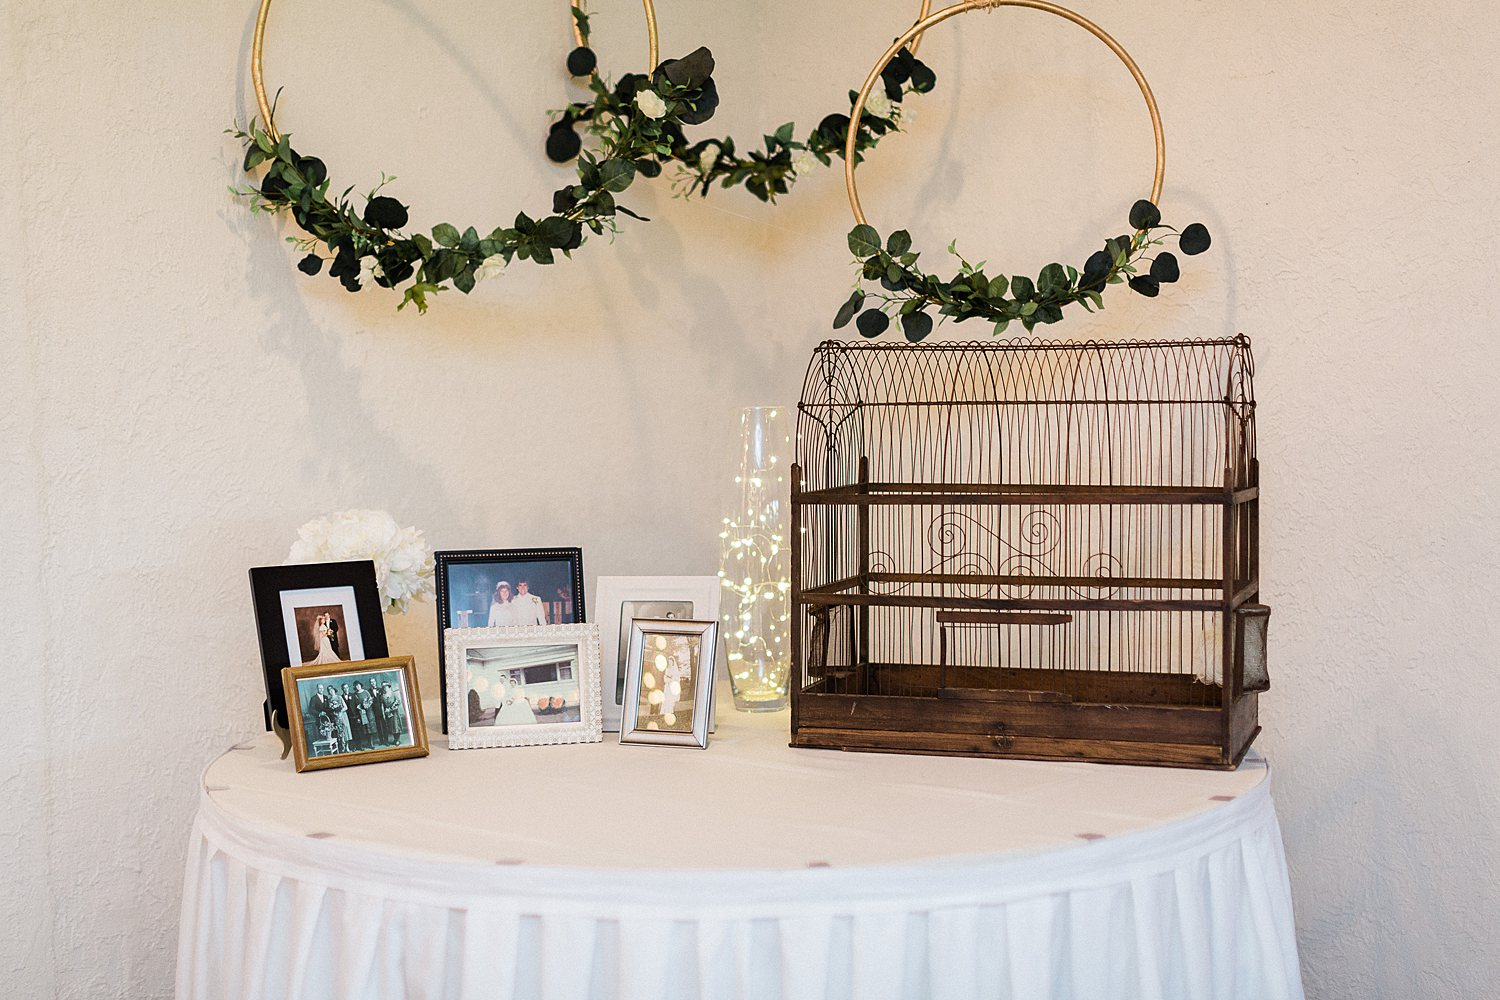 North_Central_Wisconsin_Event_Wedding_Venues_Fall_Weddings_The_Bailiwick_Venue_James-Stokes-Photography065.jpg